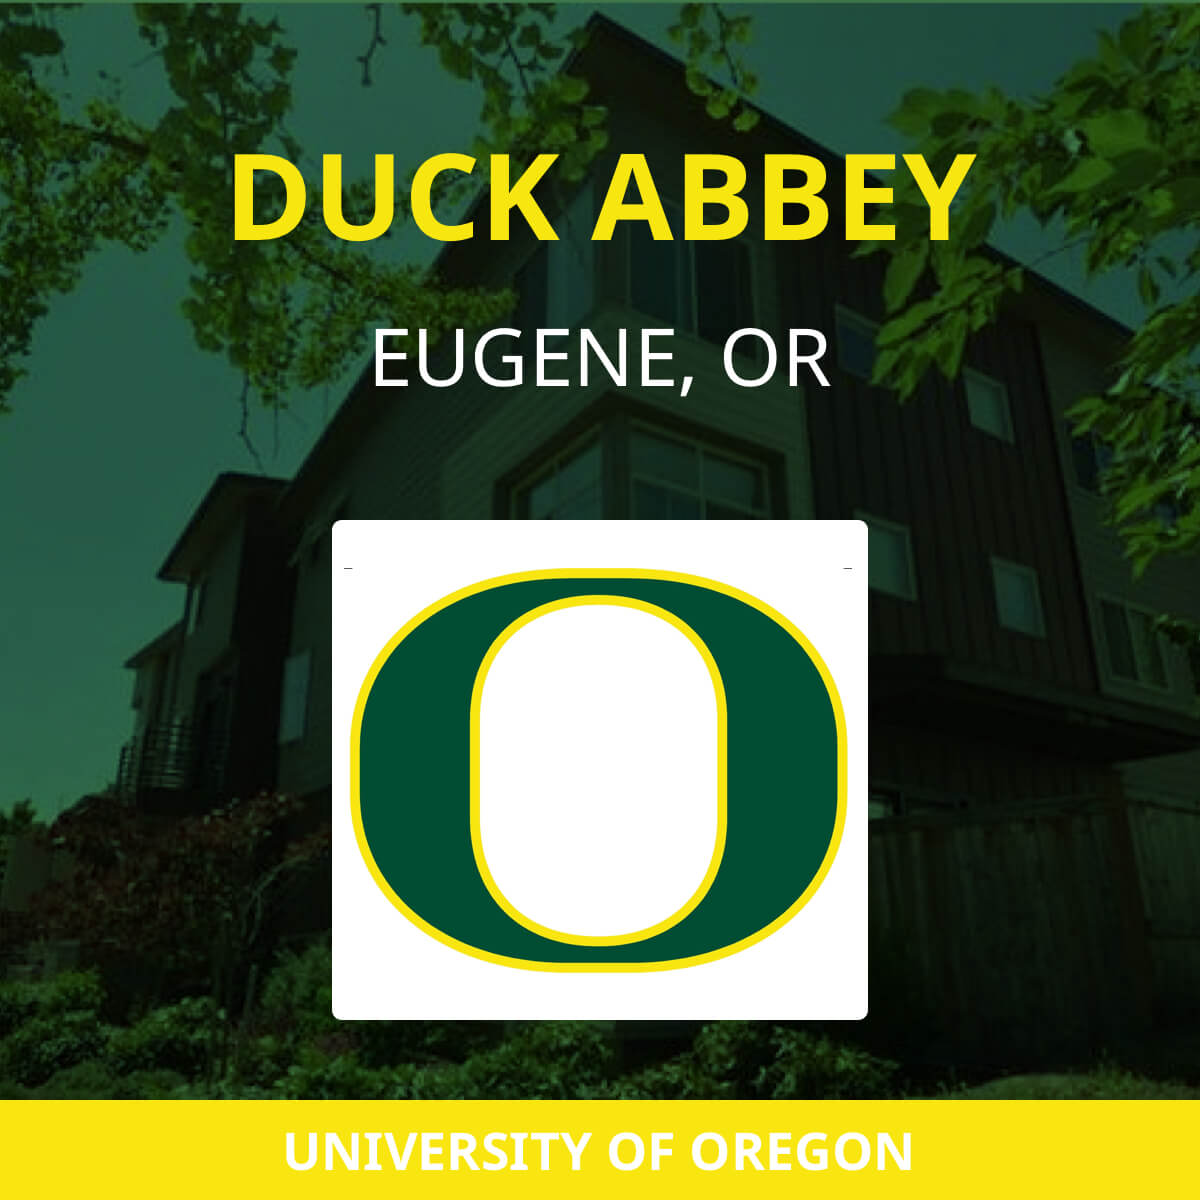 Duck Abbey Apartments | Near UO | Eugene, OR Student Apartments